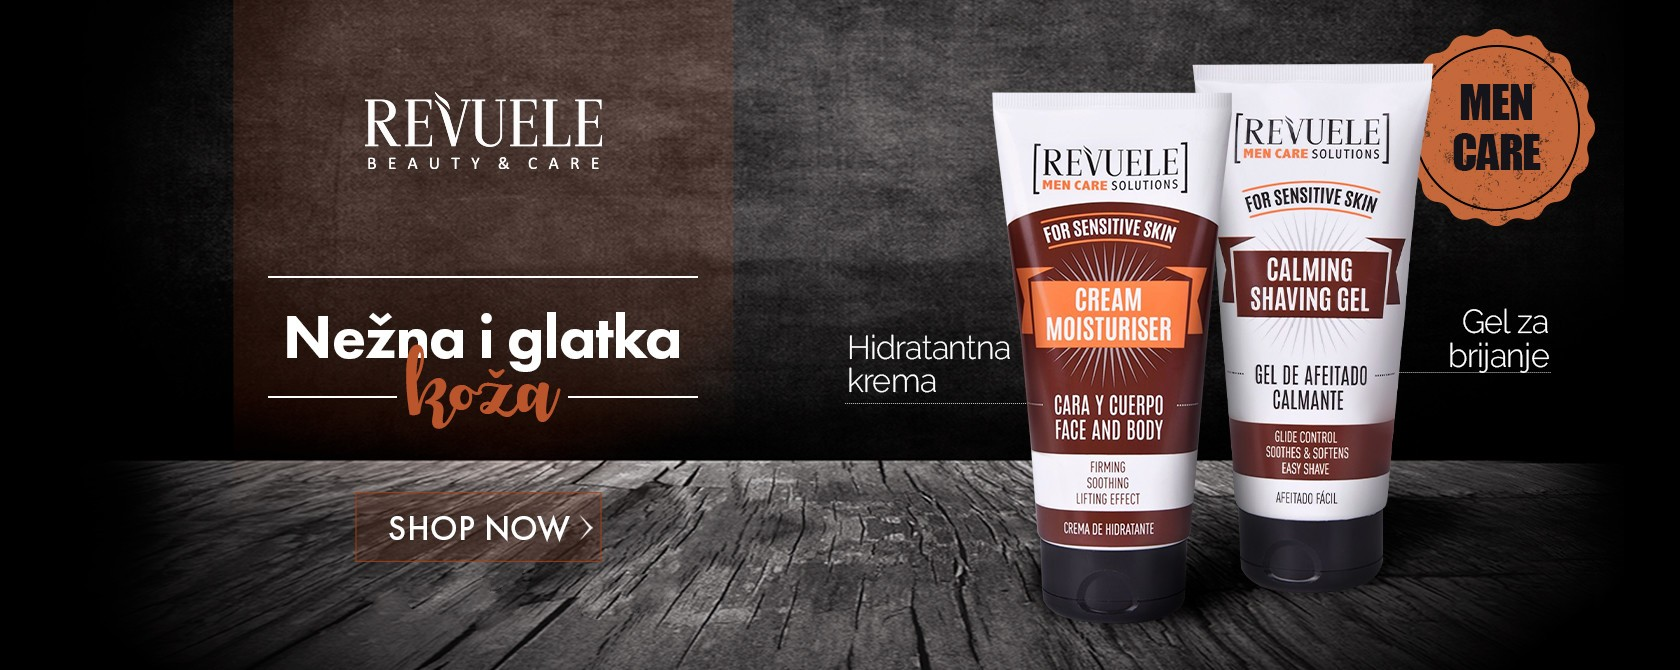 Revuele Men Care